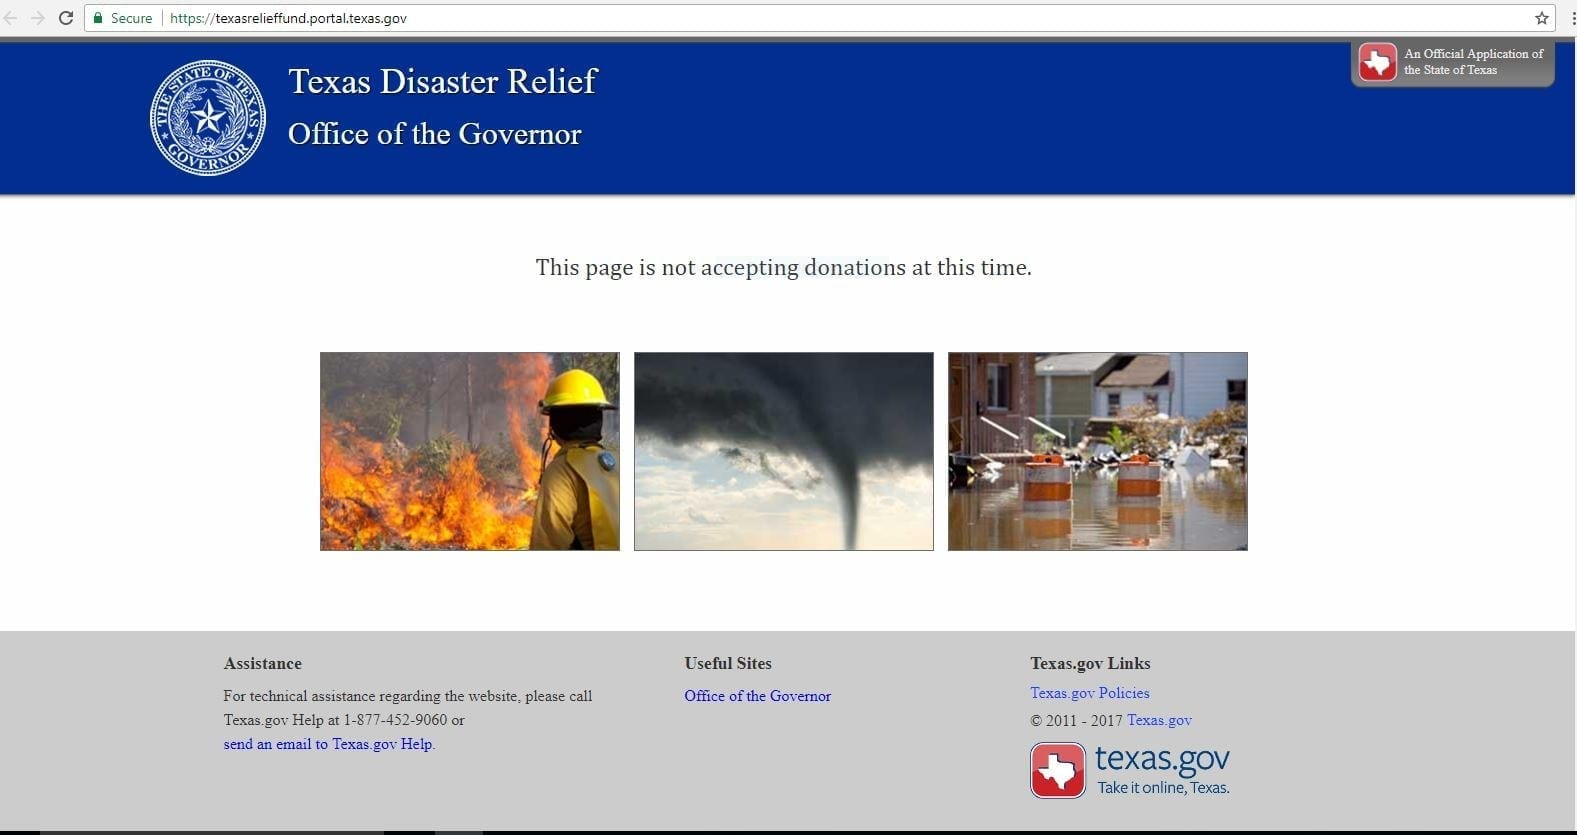 Texas Disaster Relief website